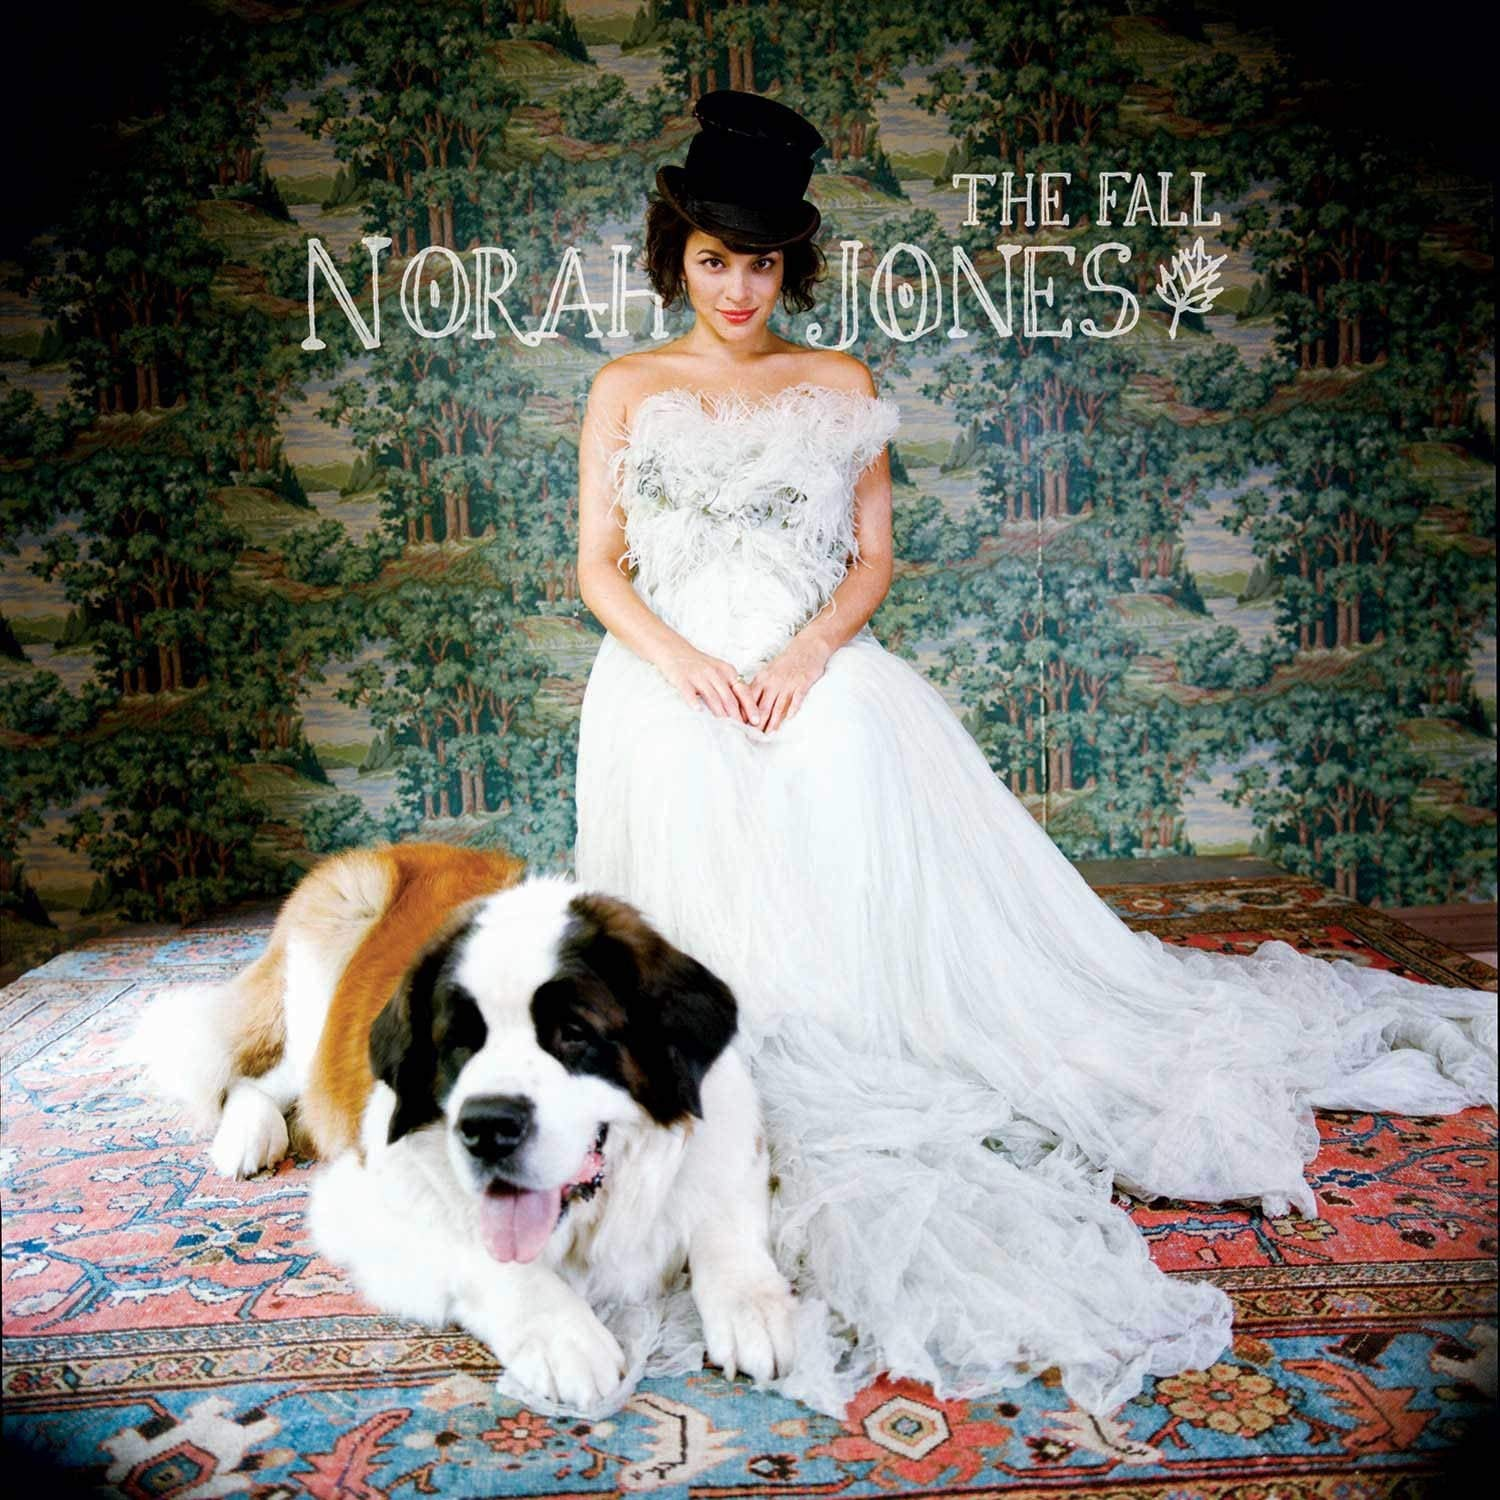 Norah Jones, The Fall